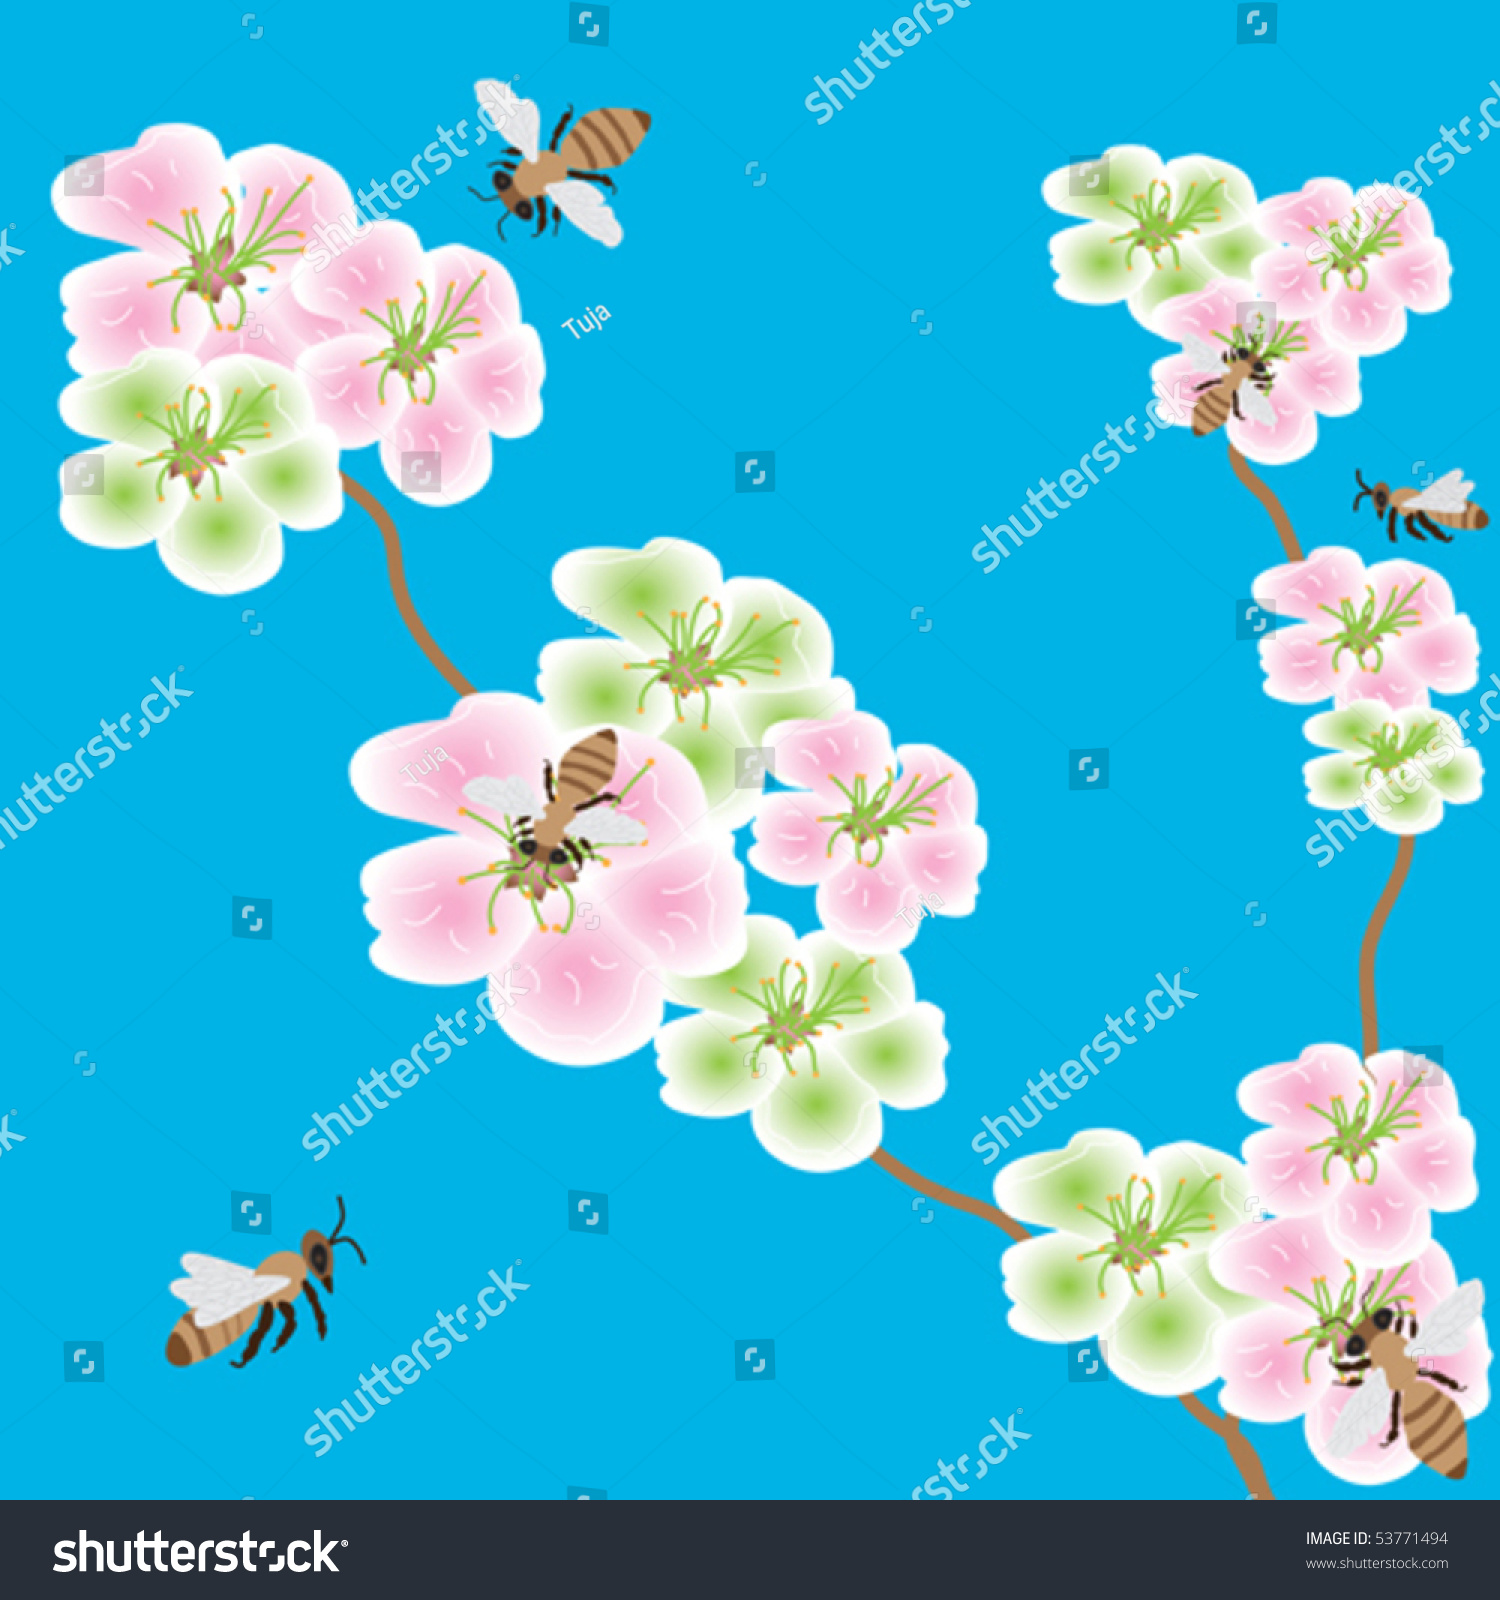 Spring Flowers With Bees In The Blue Sky